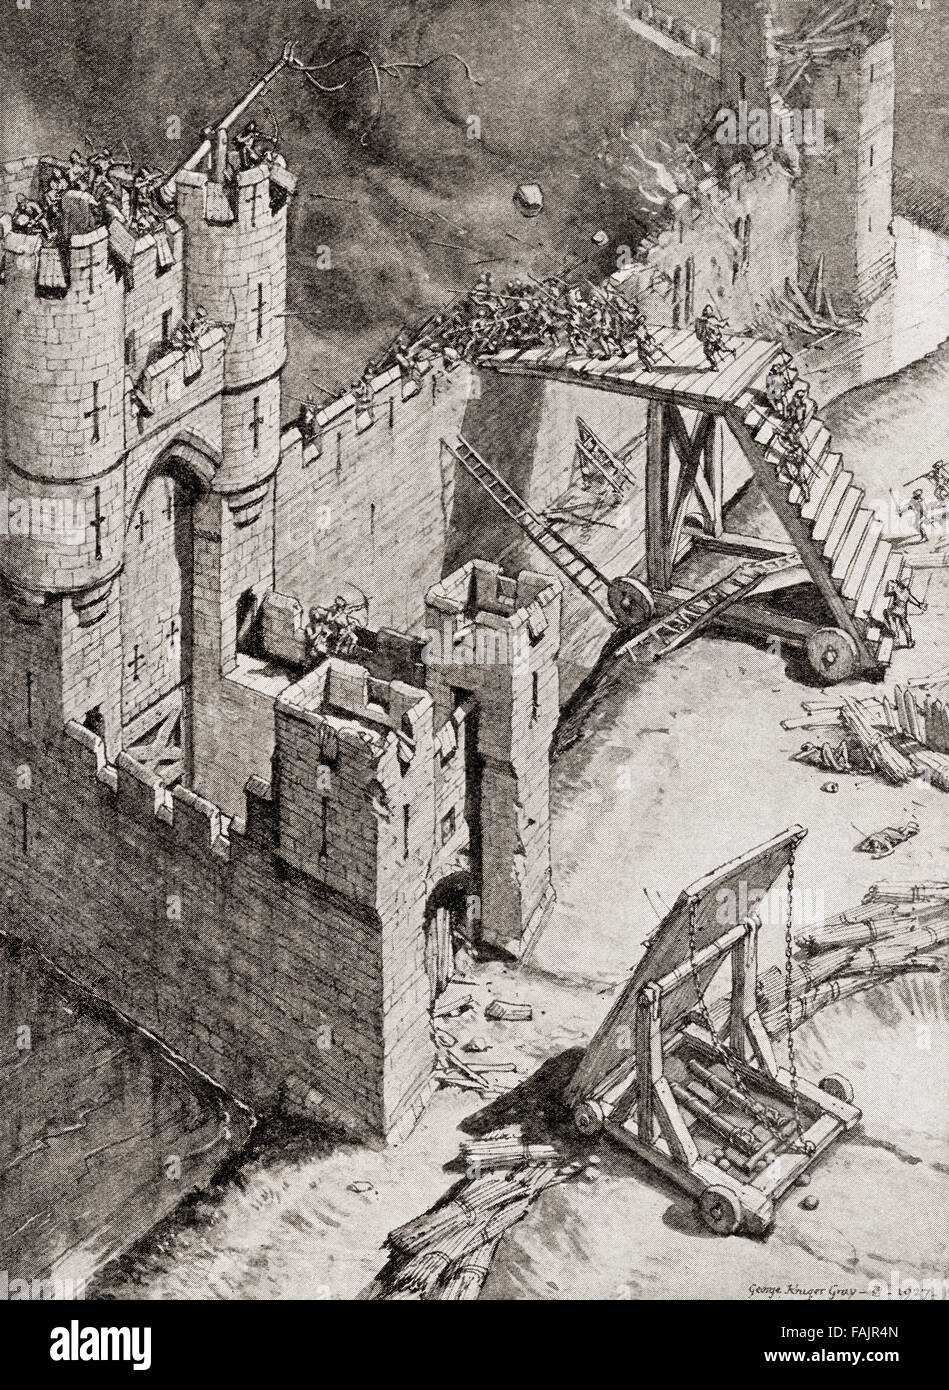 The Siege Of A Castle In The Th Century A Hand To Hand Fight On Fajr N on Medieval Castle Age Siege Weapons